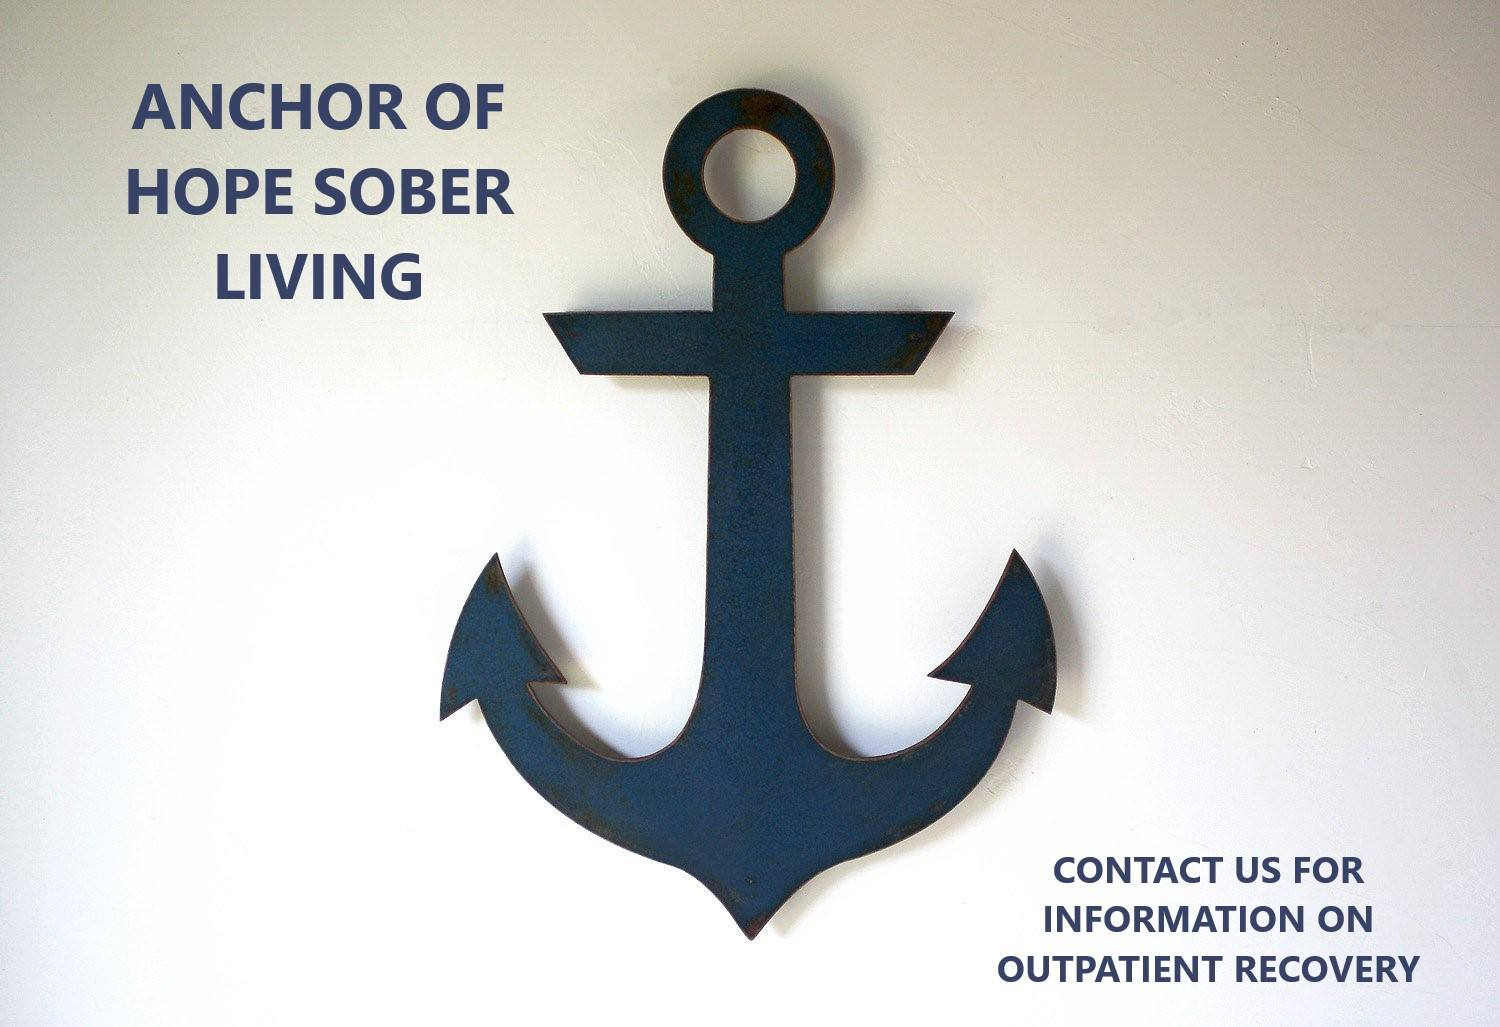 AN ANCHOR OF HOPE SOBER LIVING